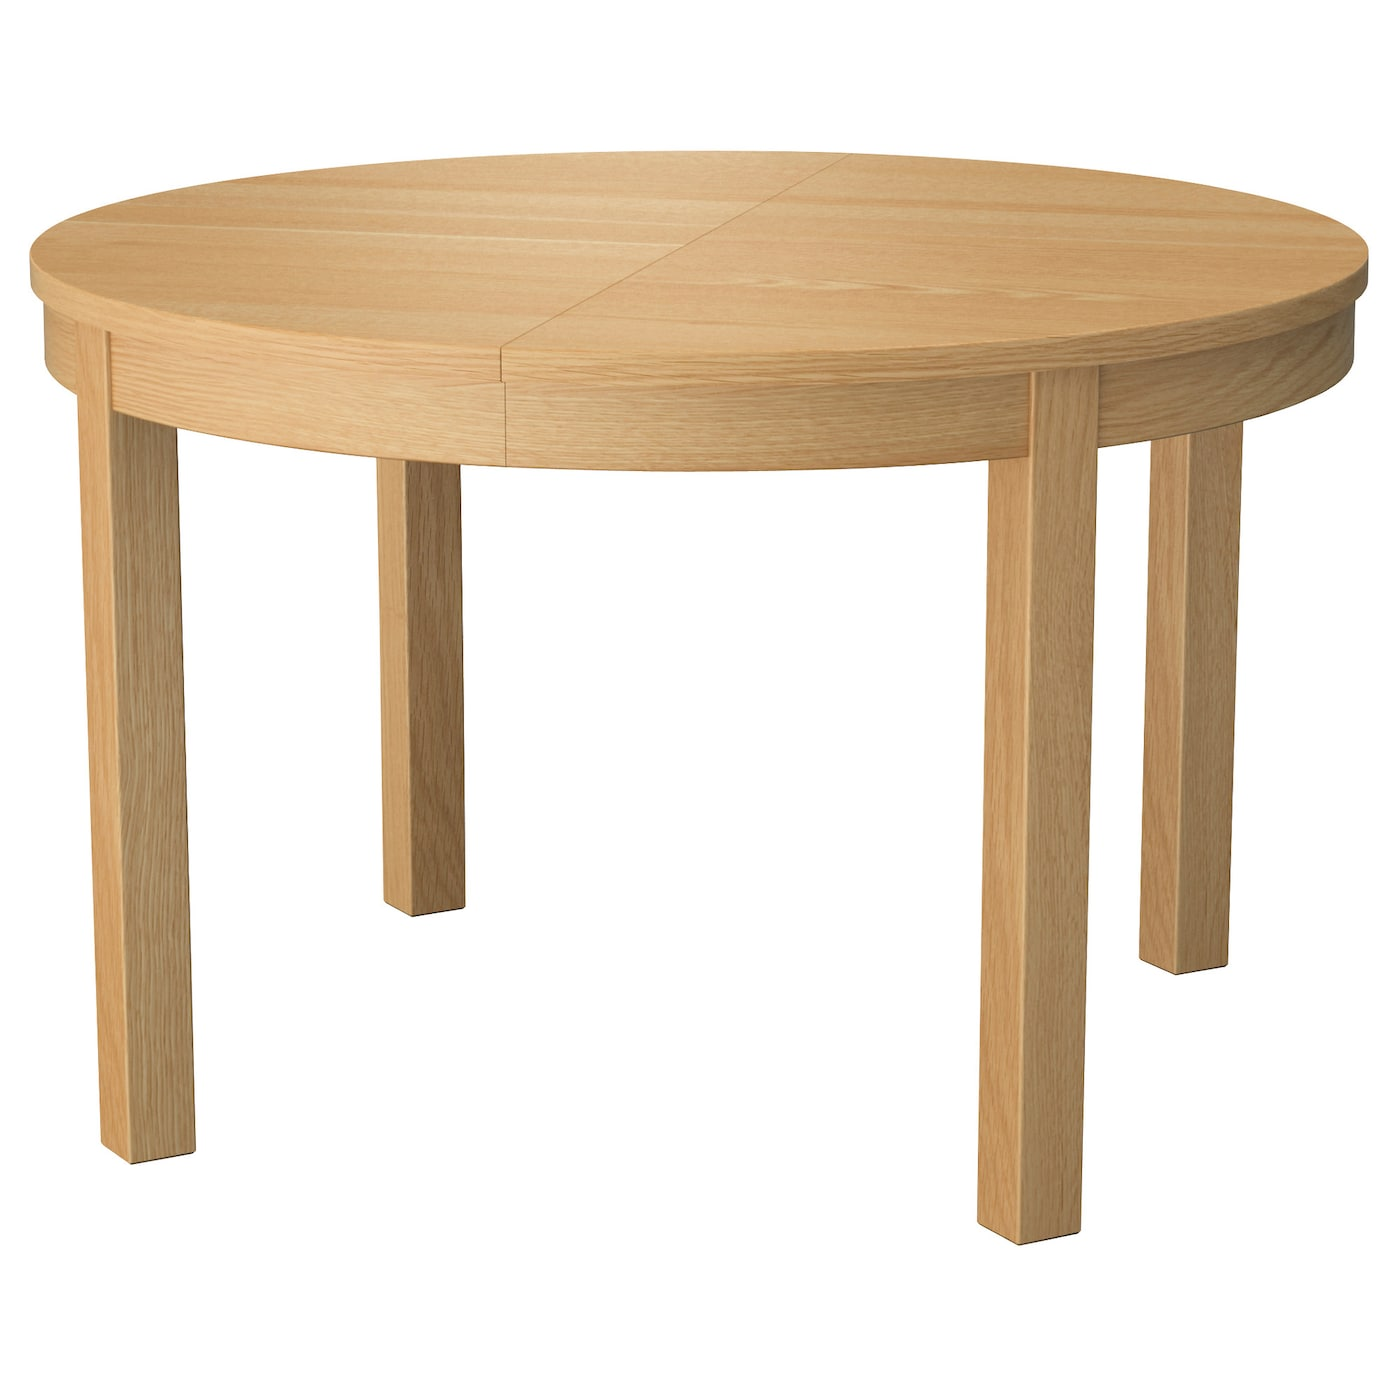 IKEA BJURSTA extendable table The clear-lacquered surface is easy to wipe clean.